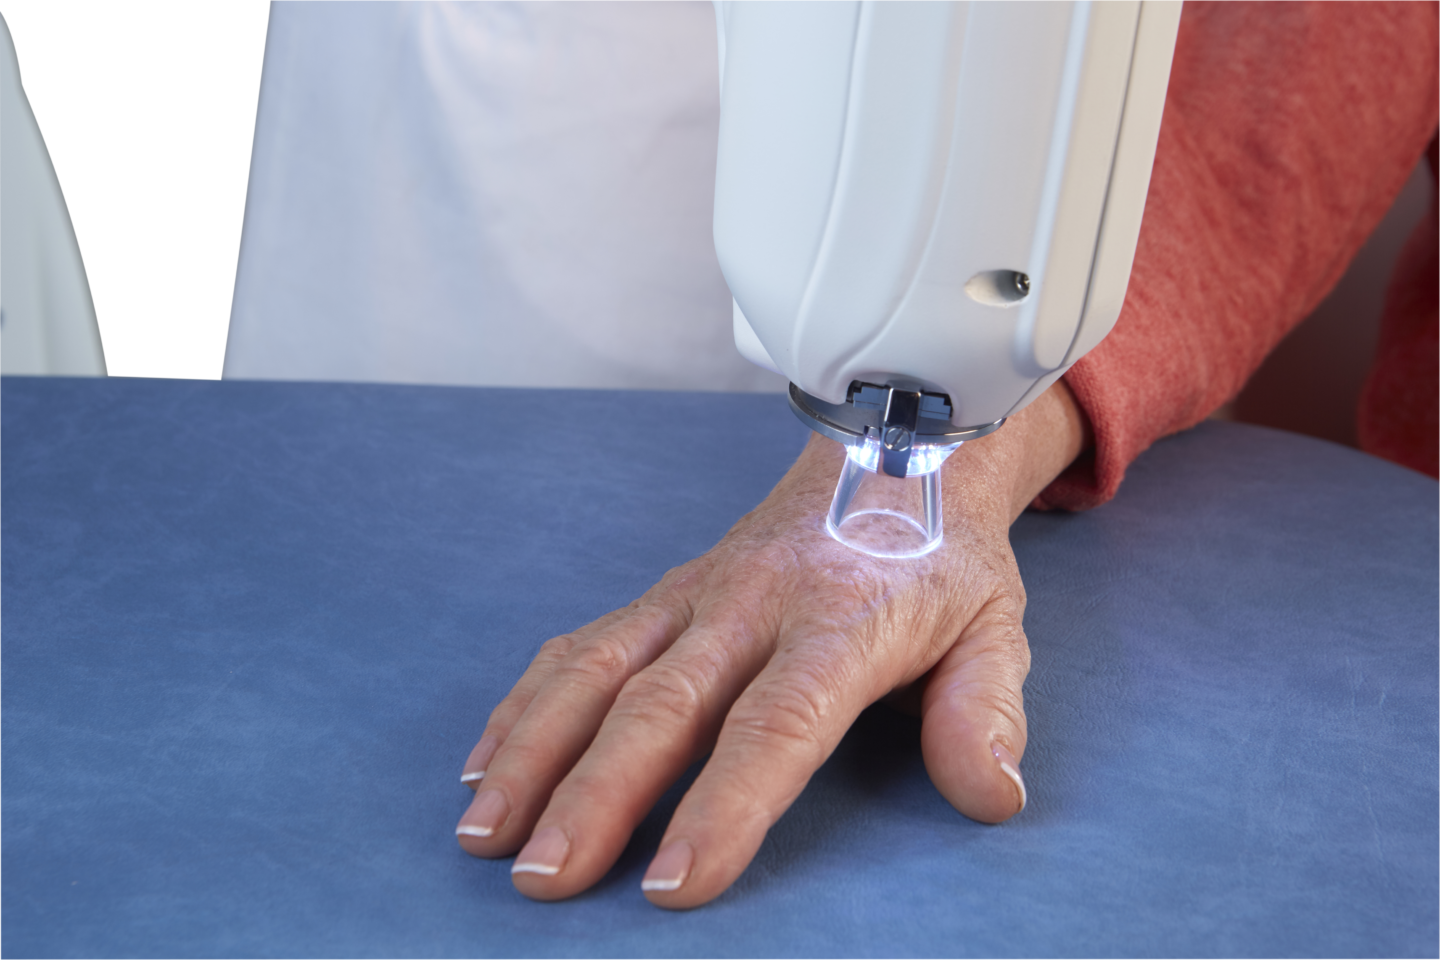 Spotlight on Precision Dermatology: Texas Physicians Work Together to Expand NMSC Treatment Options